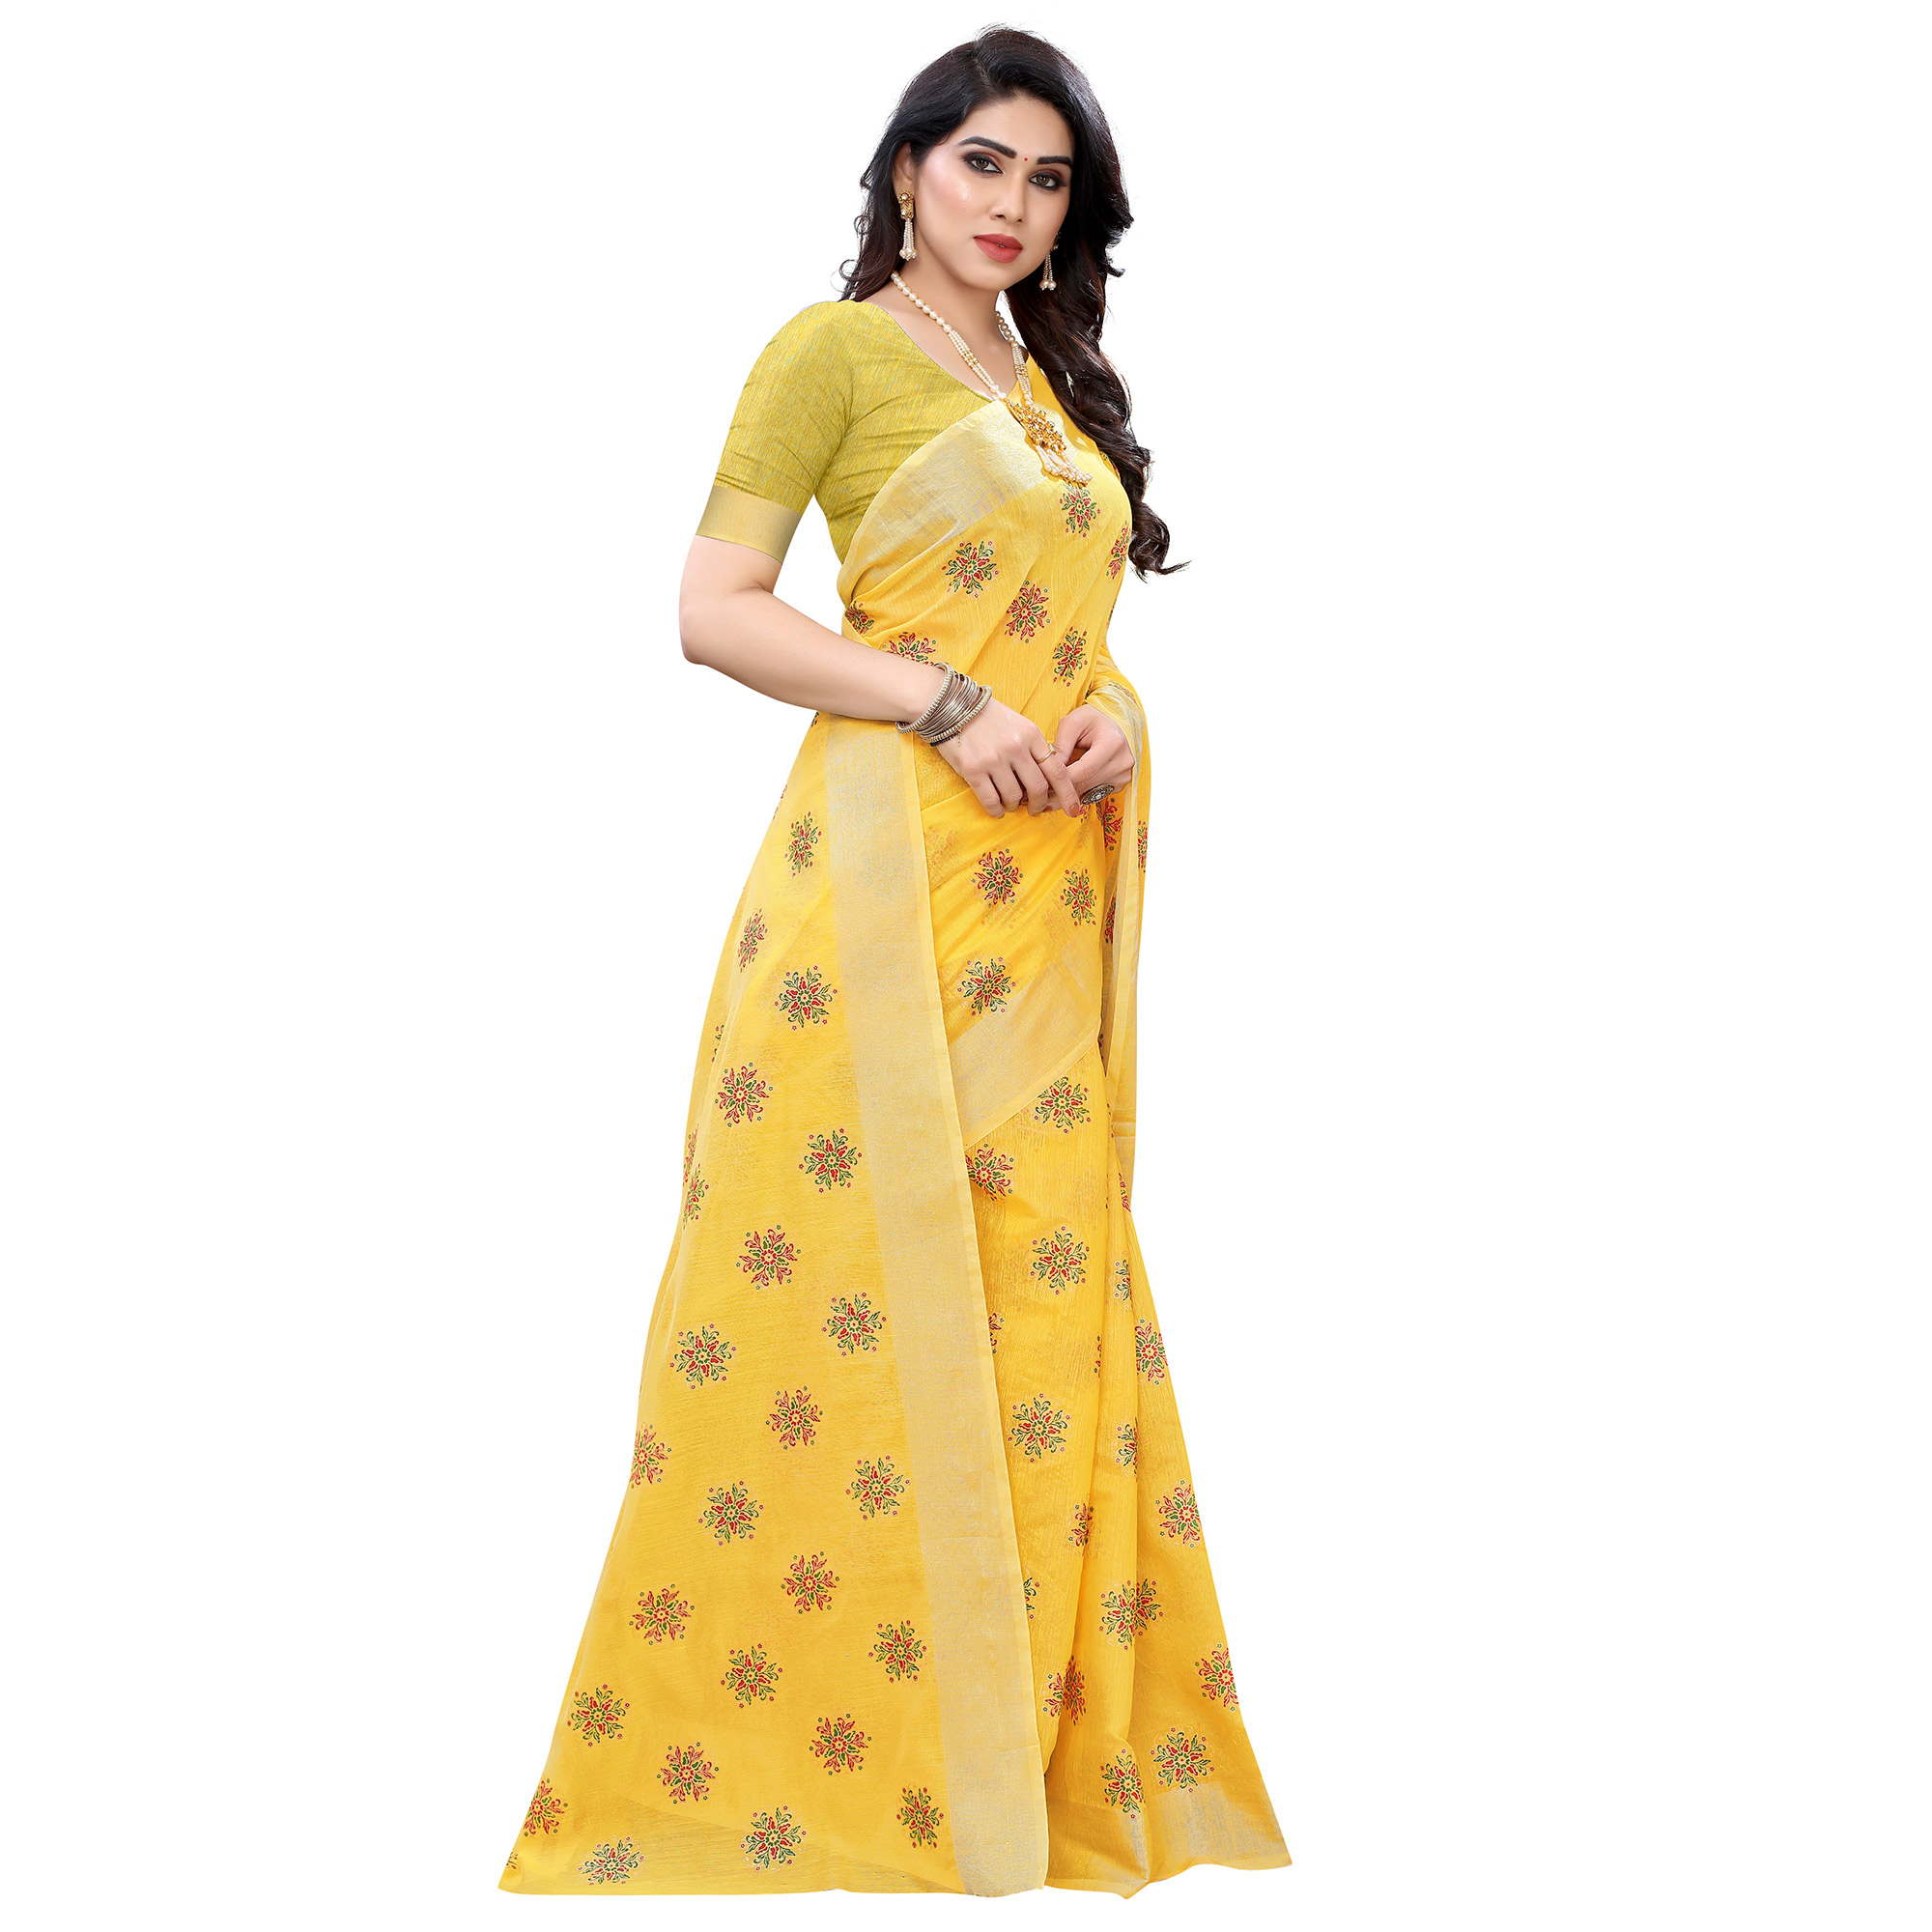 Groovy Yellow Colored Casual Wear Printed Chanderi Cotton Saree